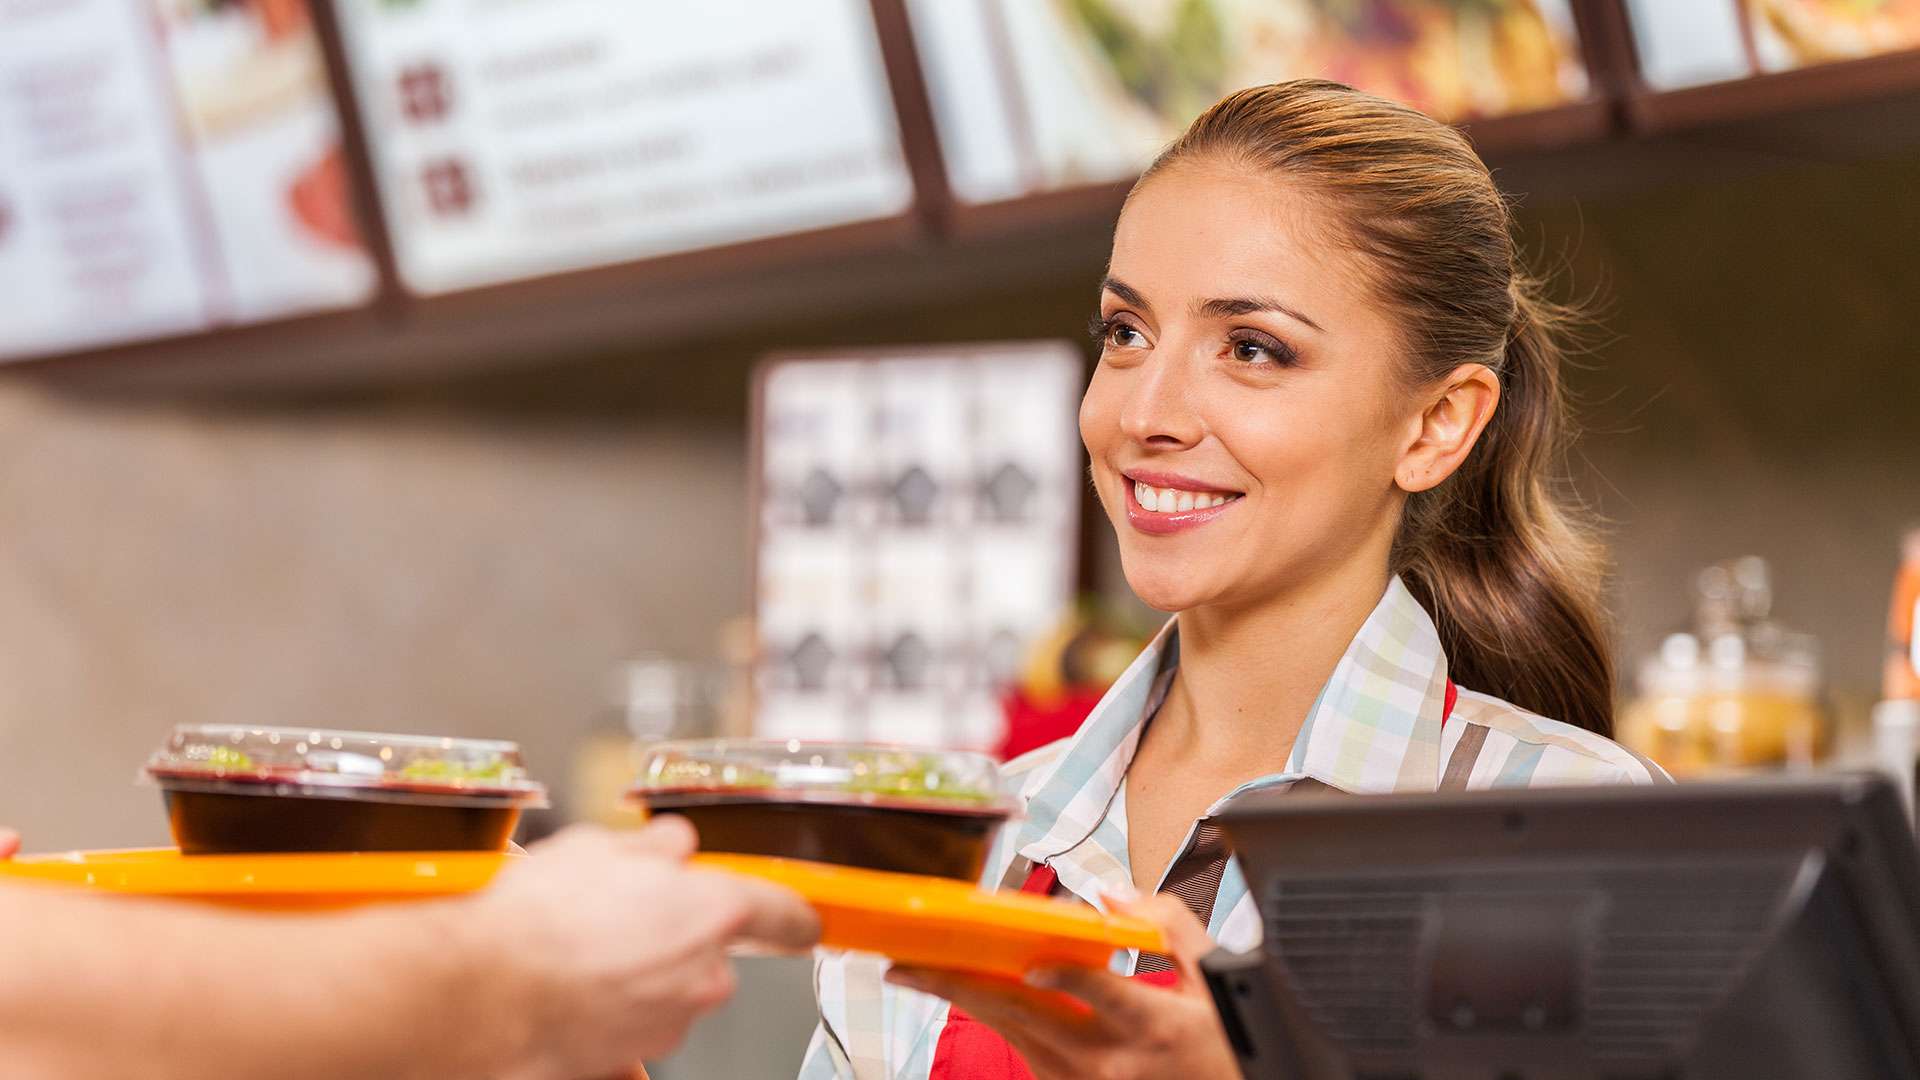 Volanté POS Solutions for Quick Service Solutions